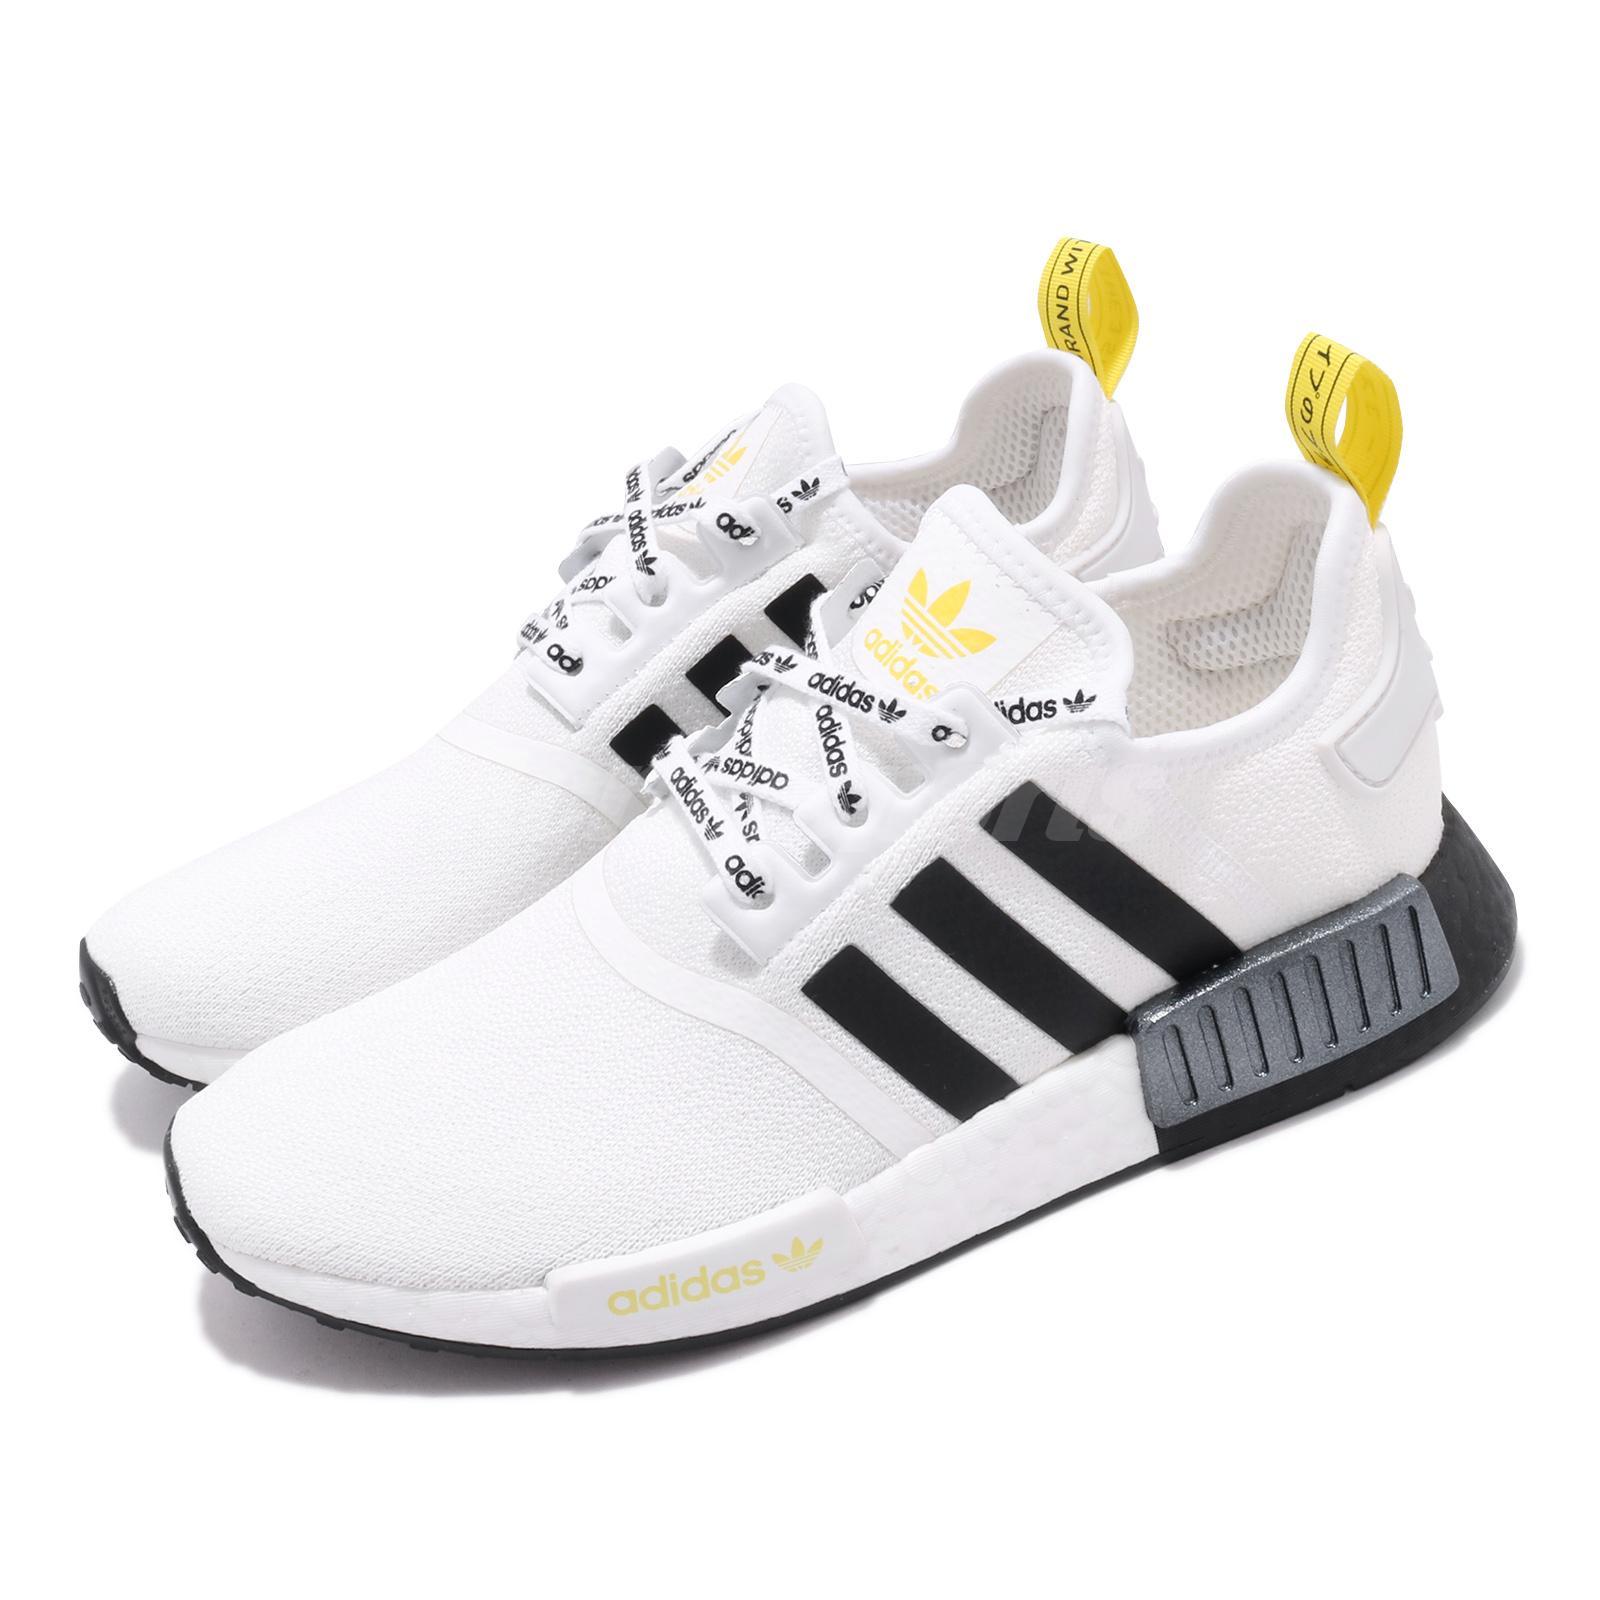 Adidas Originals Nmd R1 Boost White Black Yellow Men Casual Shoes